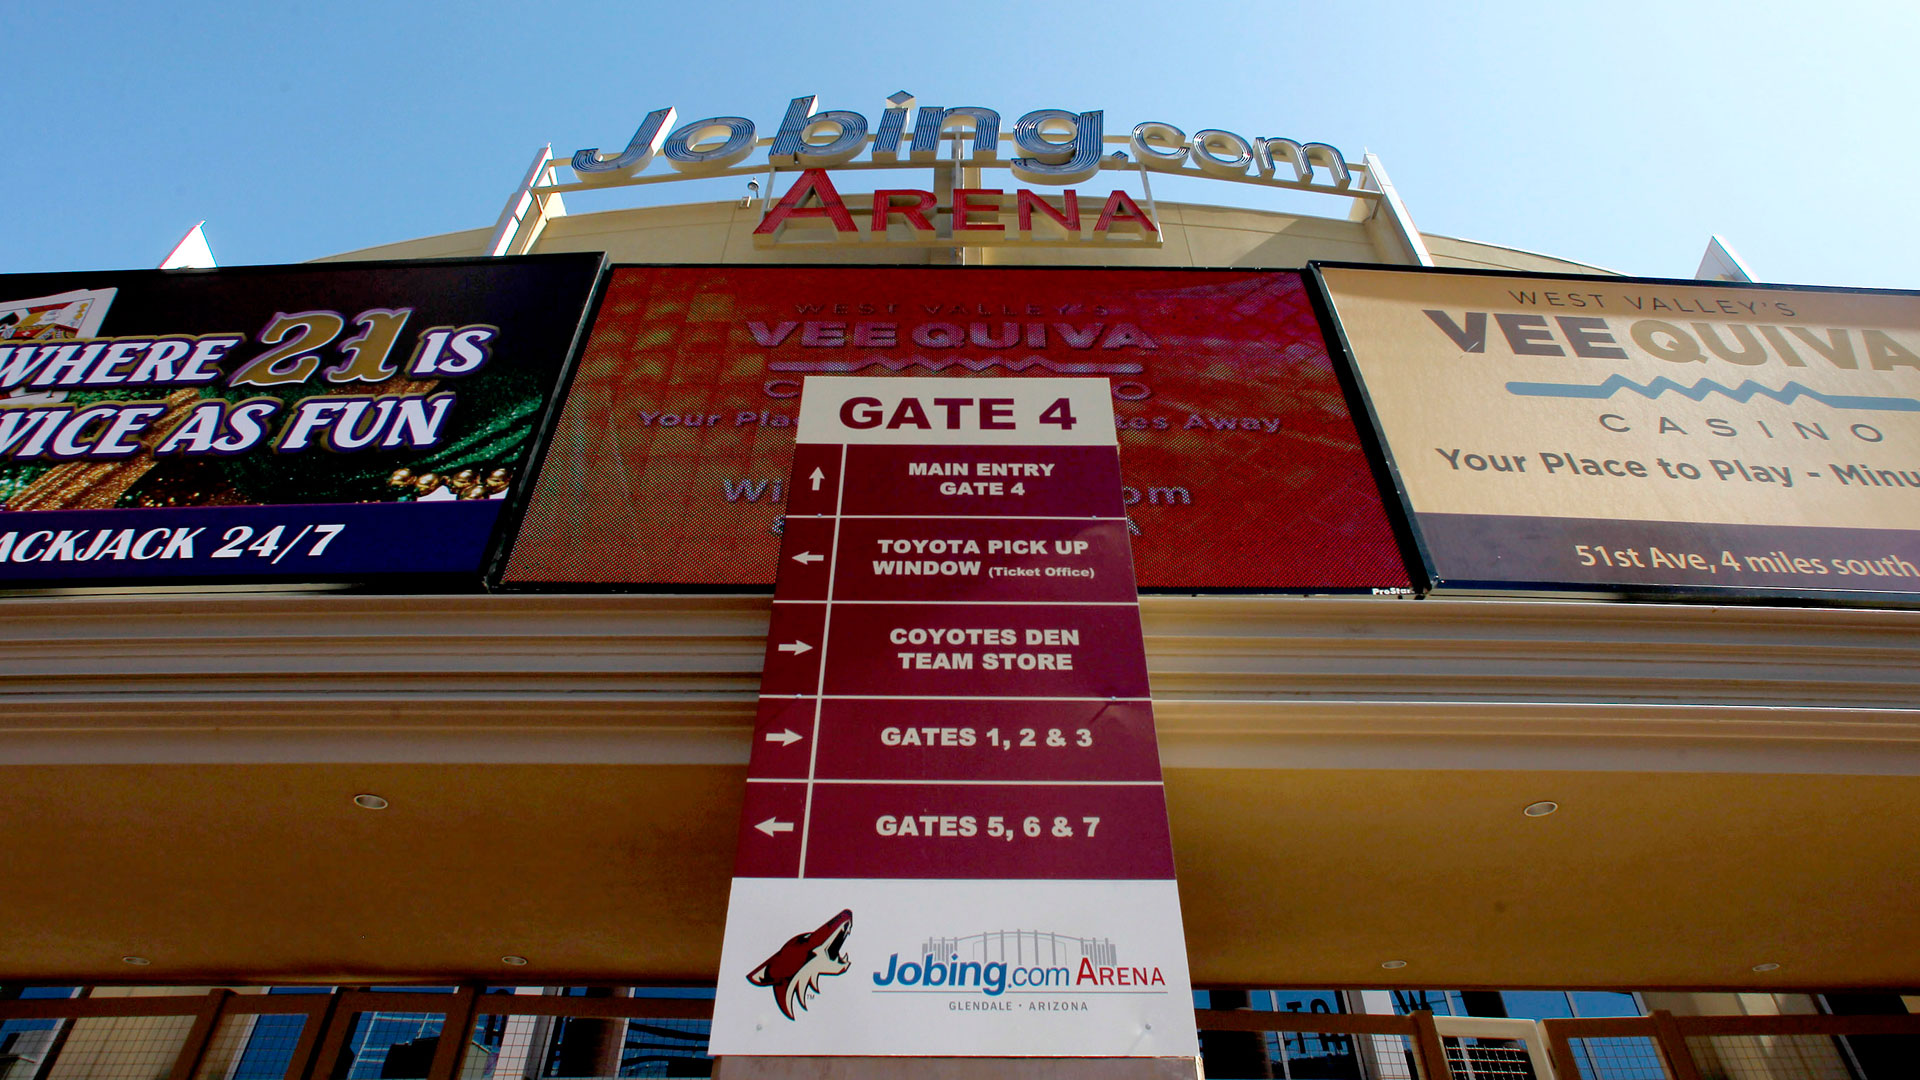 Coyotes-arena-FTR-12914